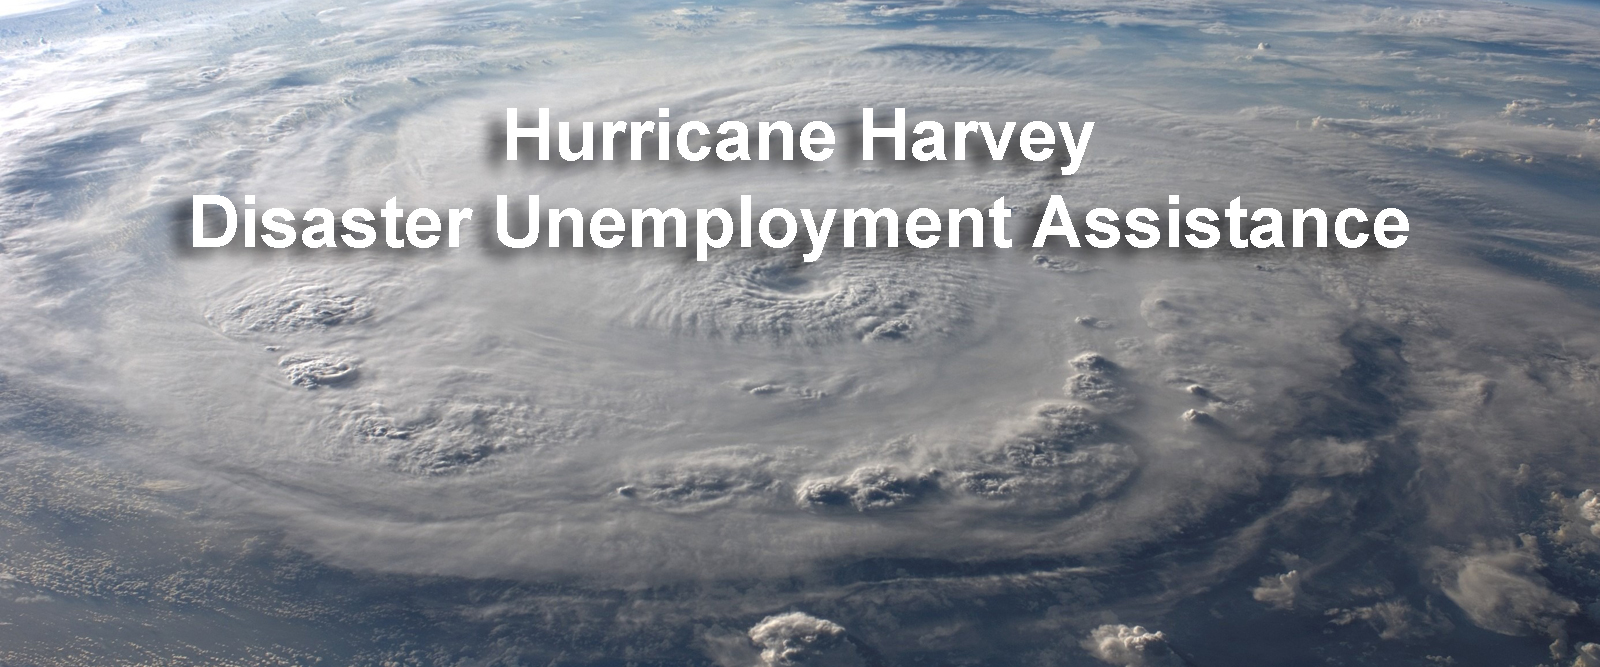 Hurricane Harvey Disaster Unemployment Assistance